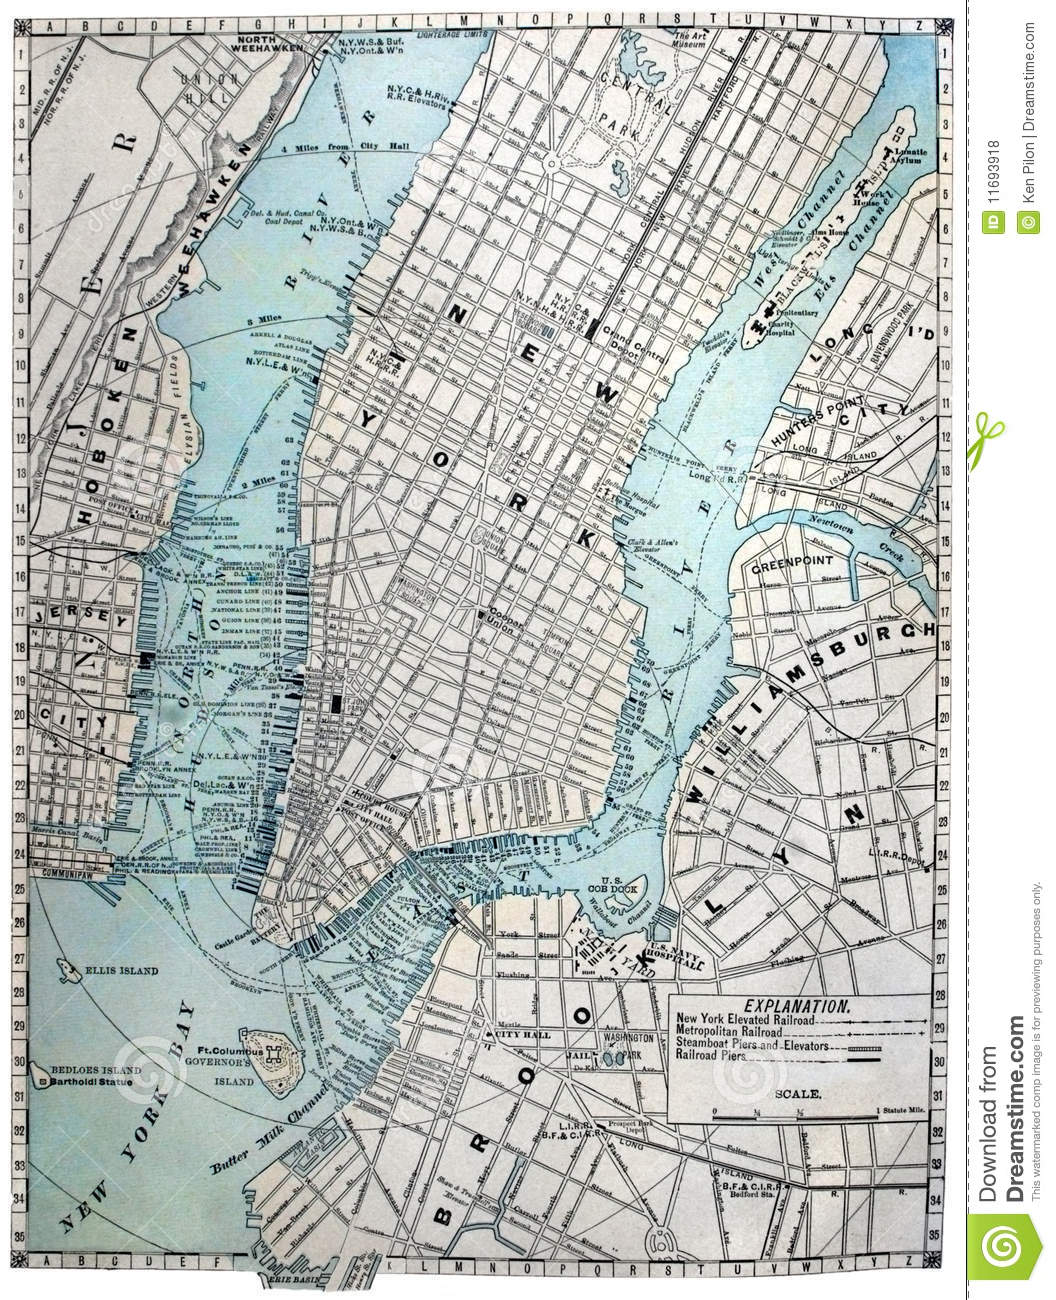 Free Map Of New York City.Old Street Map Of New York City Stock Photo Image Of Urban